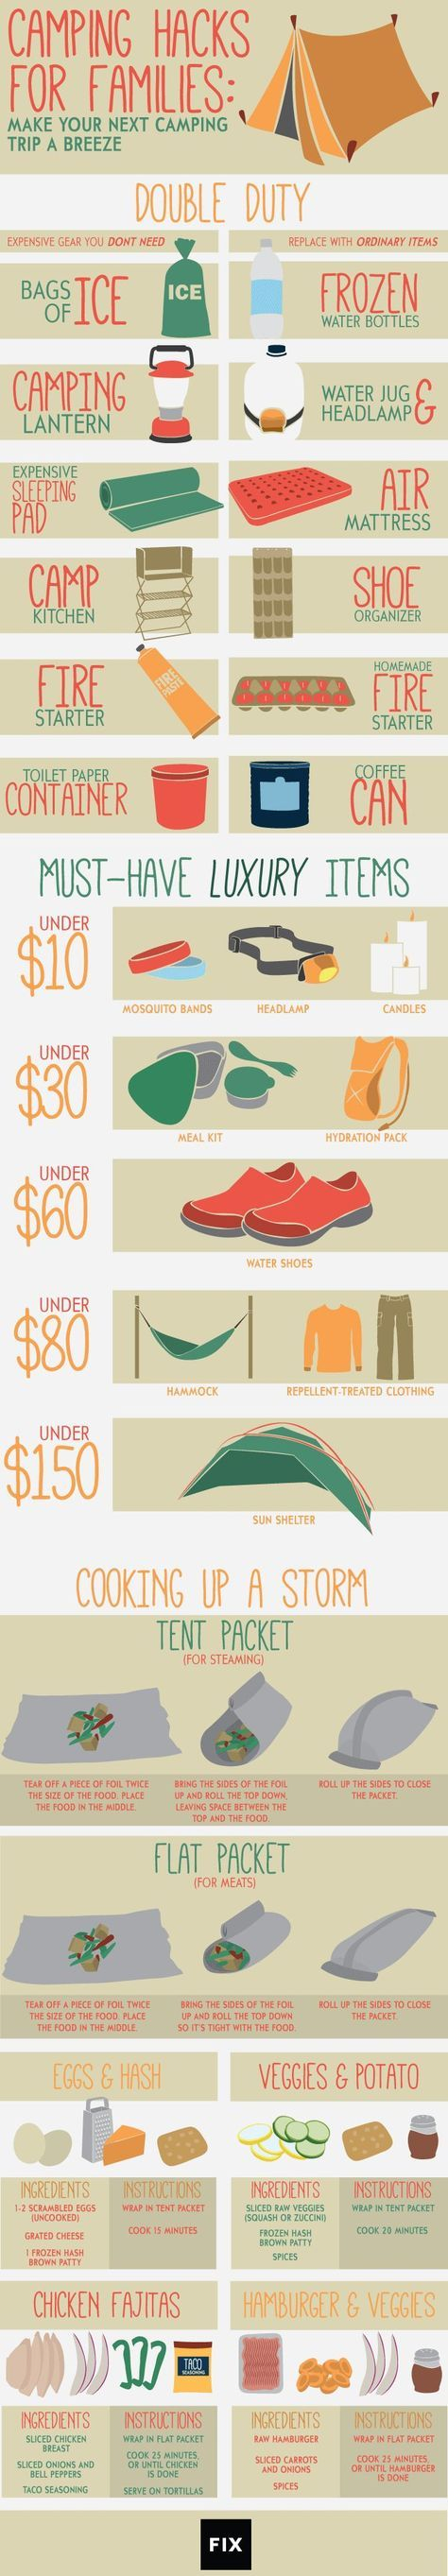 Follow these fun camping hacks to save time, space, and money on your next family trip! #Camping